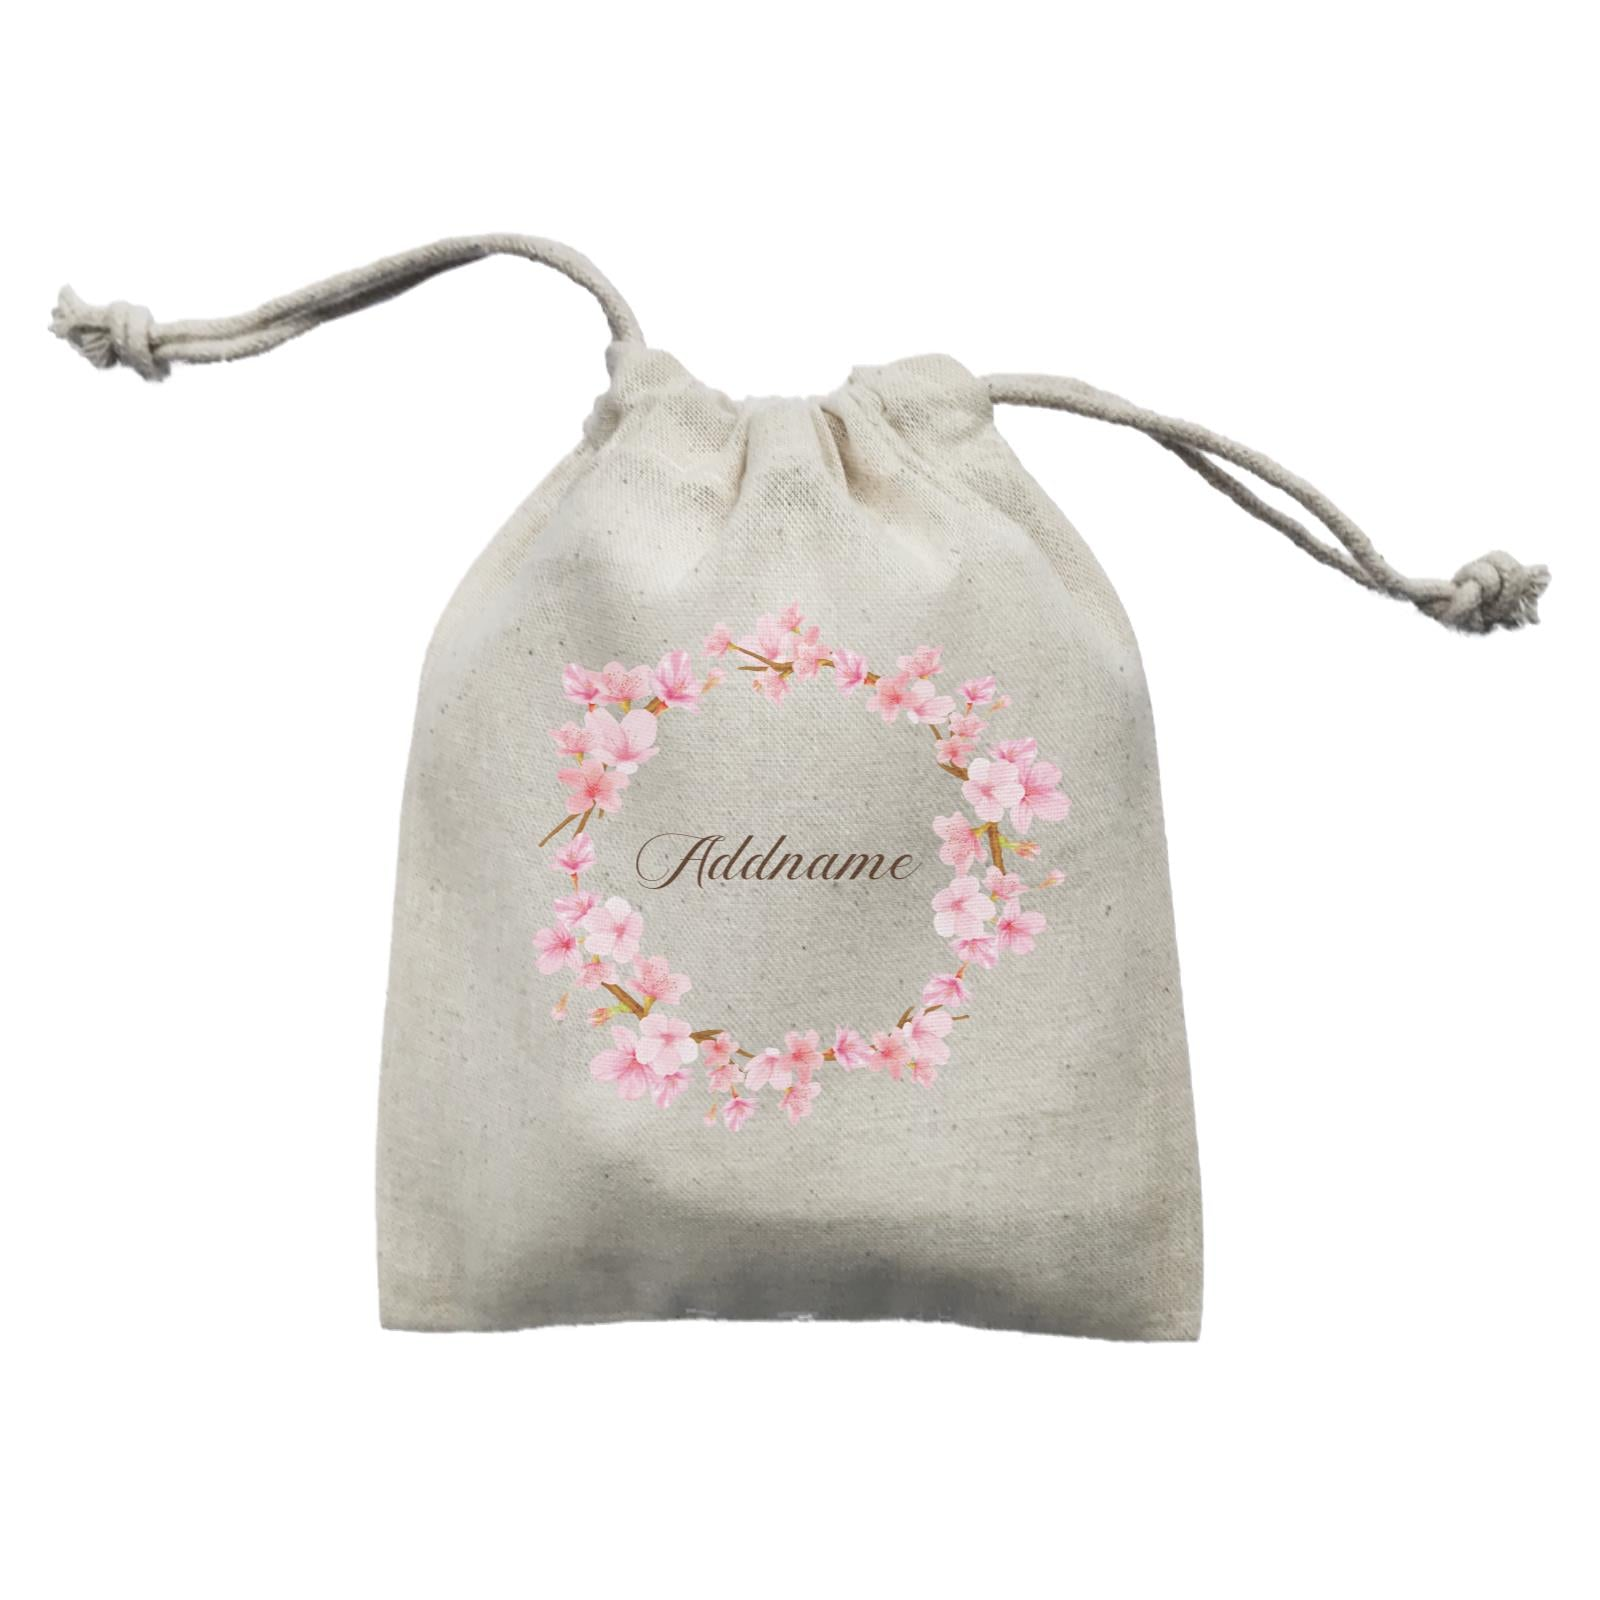 Pink Flower Frame Personalisable with Name and Text Mini Accessories Mini Pouch